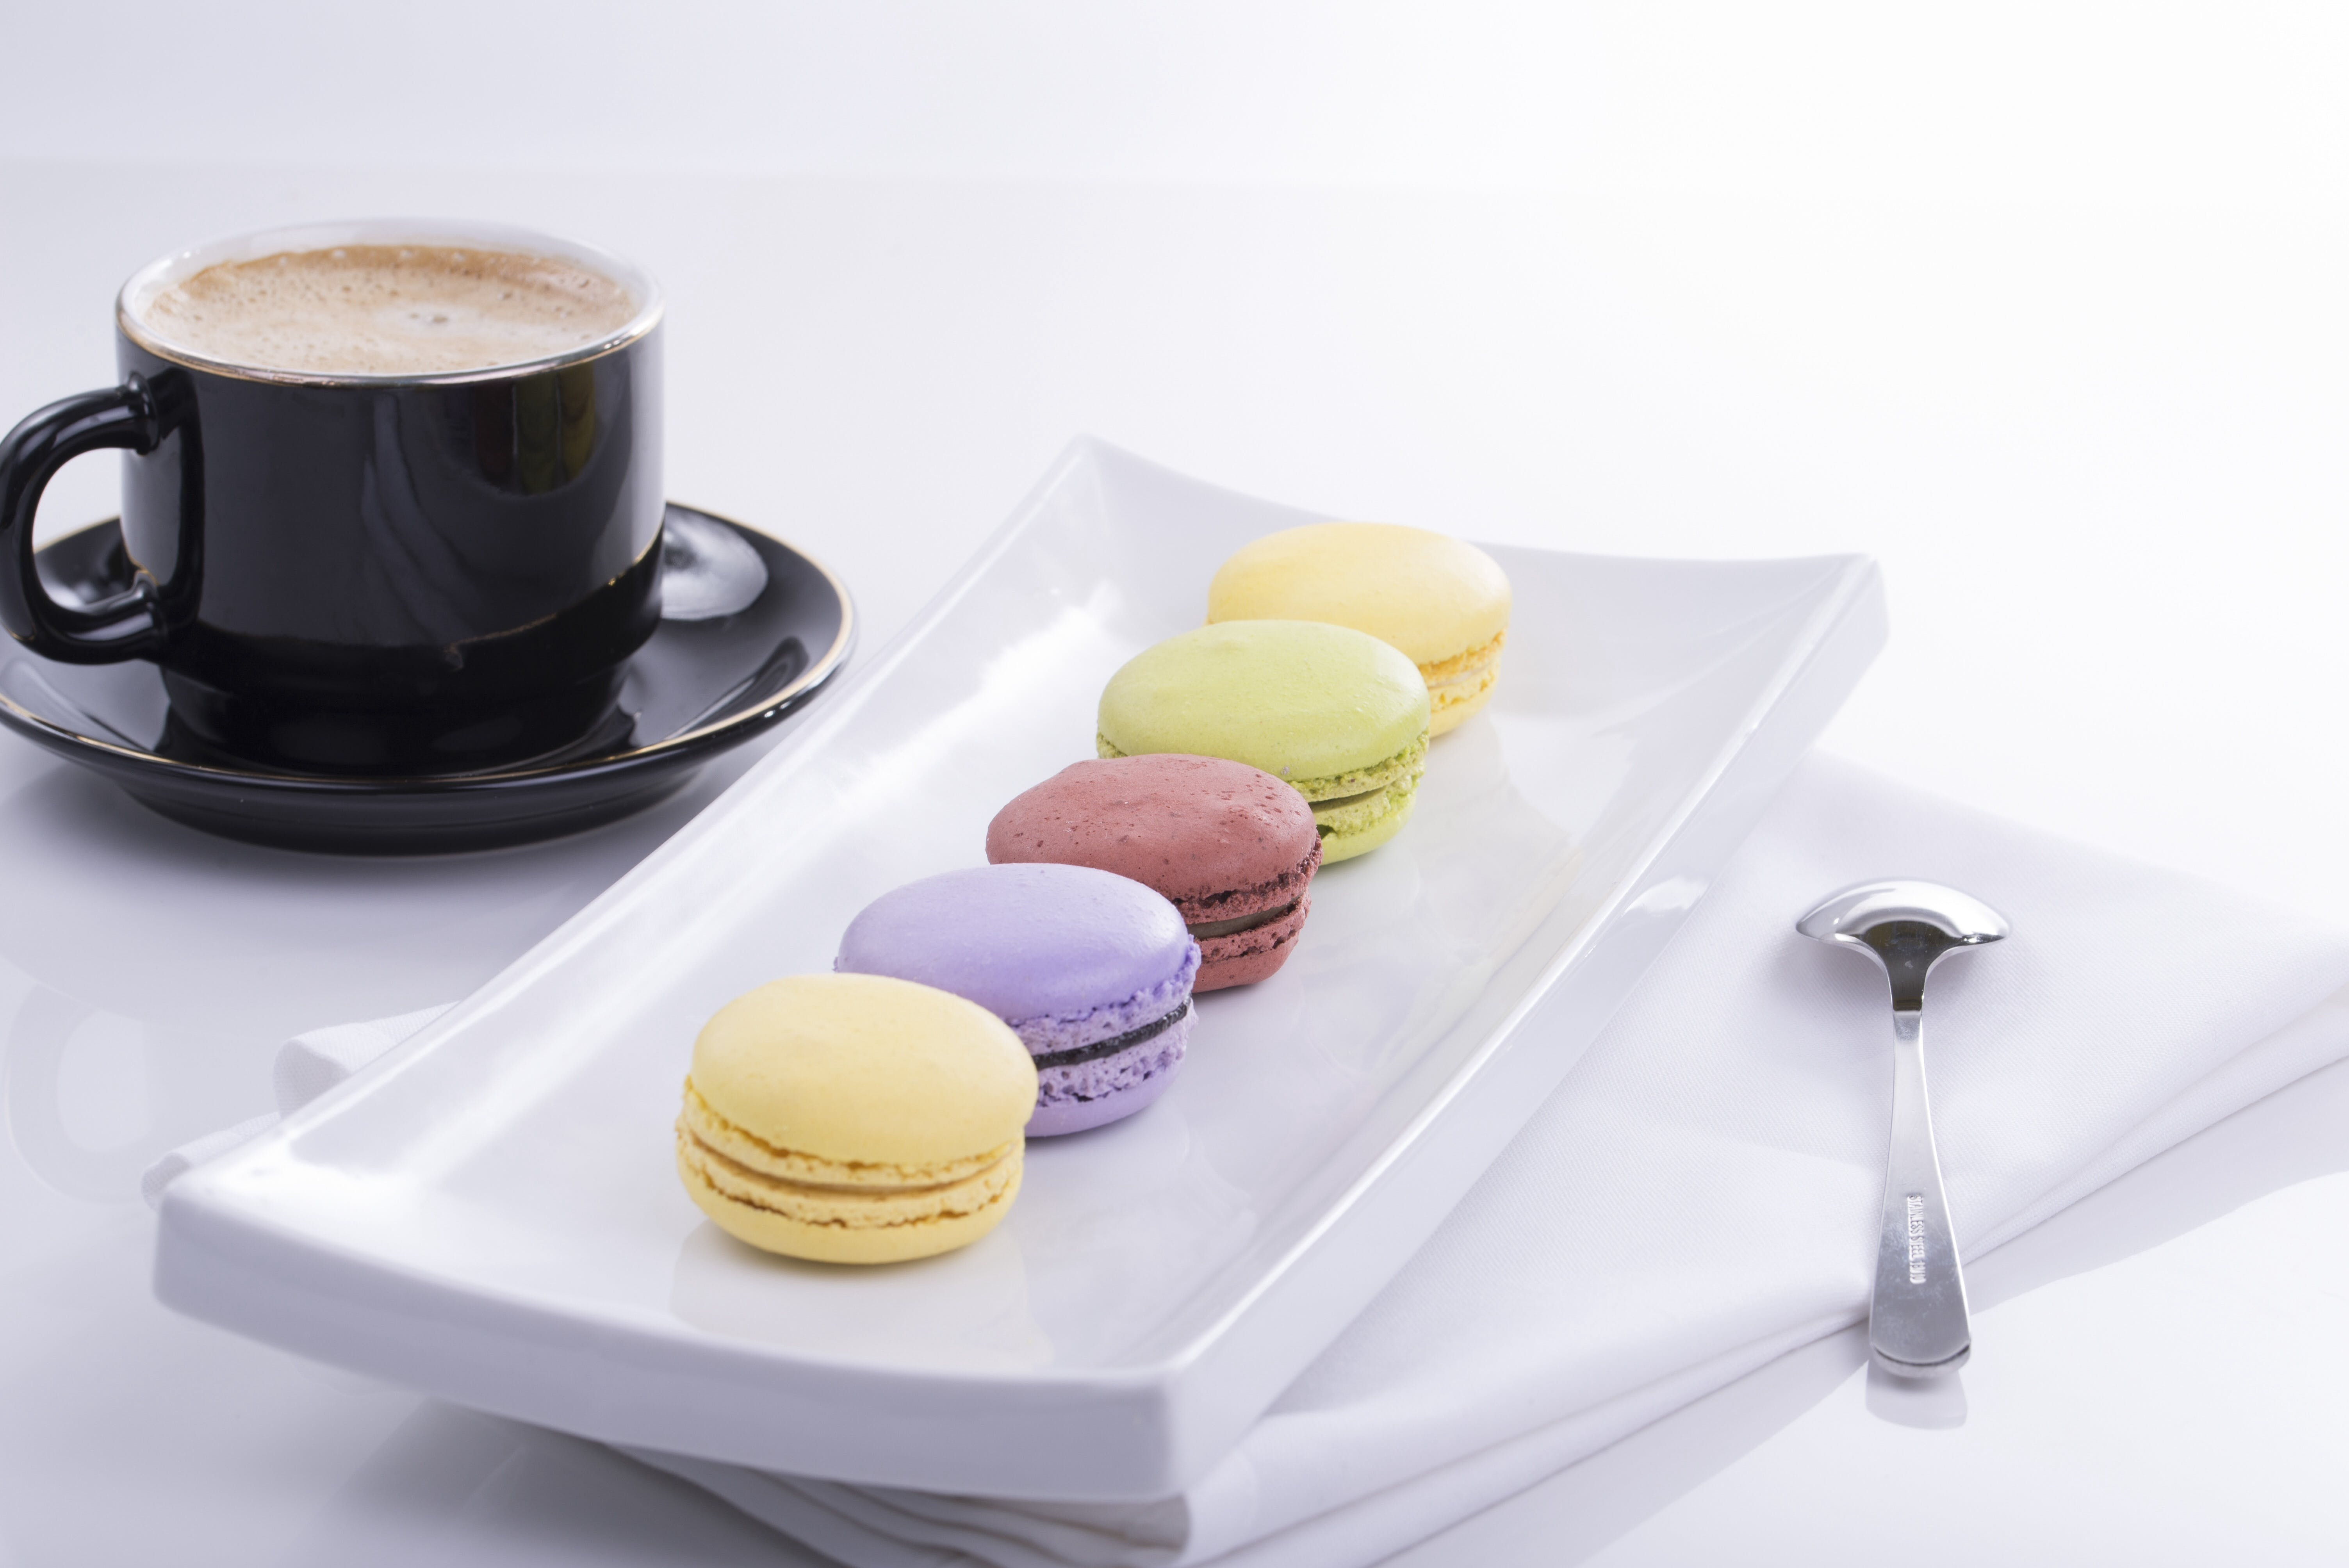 Black Teacup and 5 French Macaroons on Plate